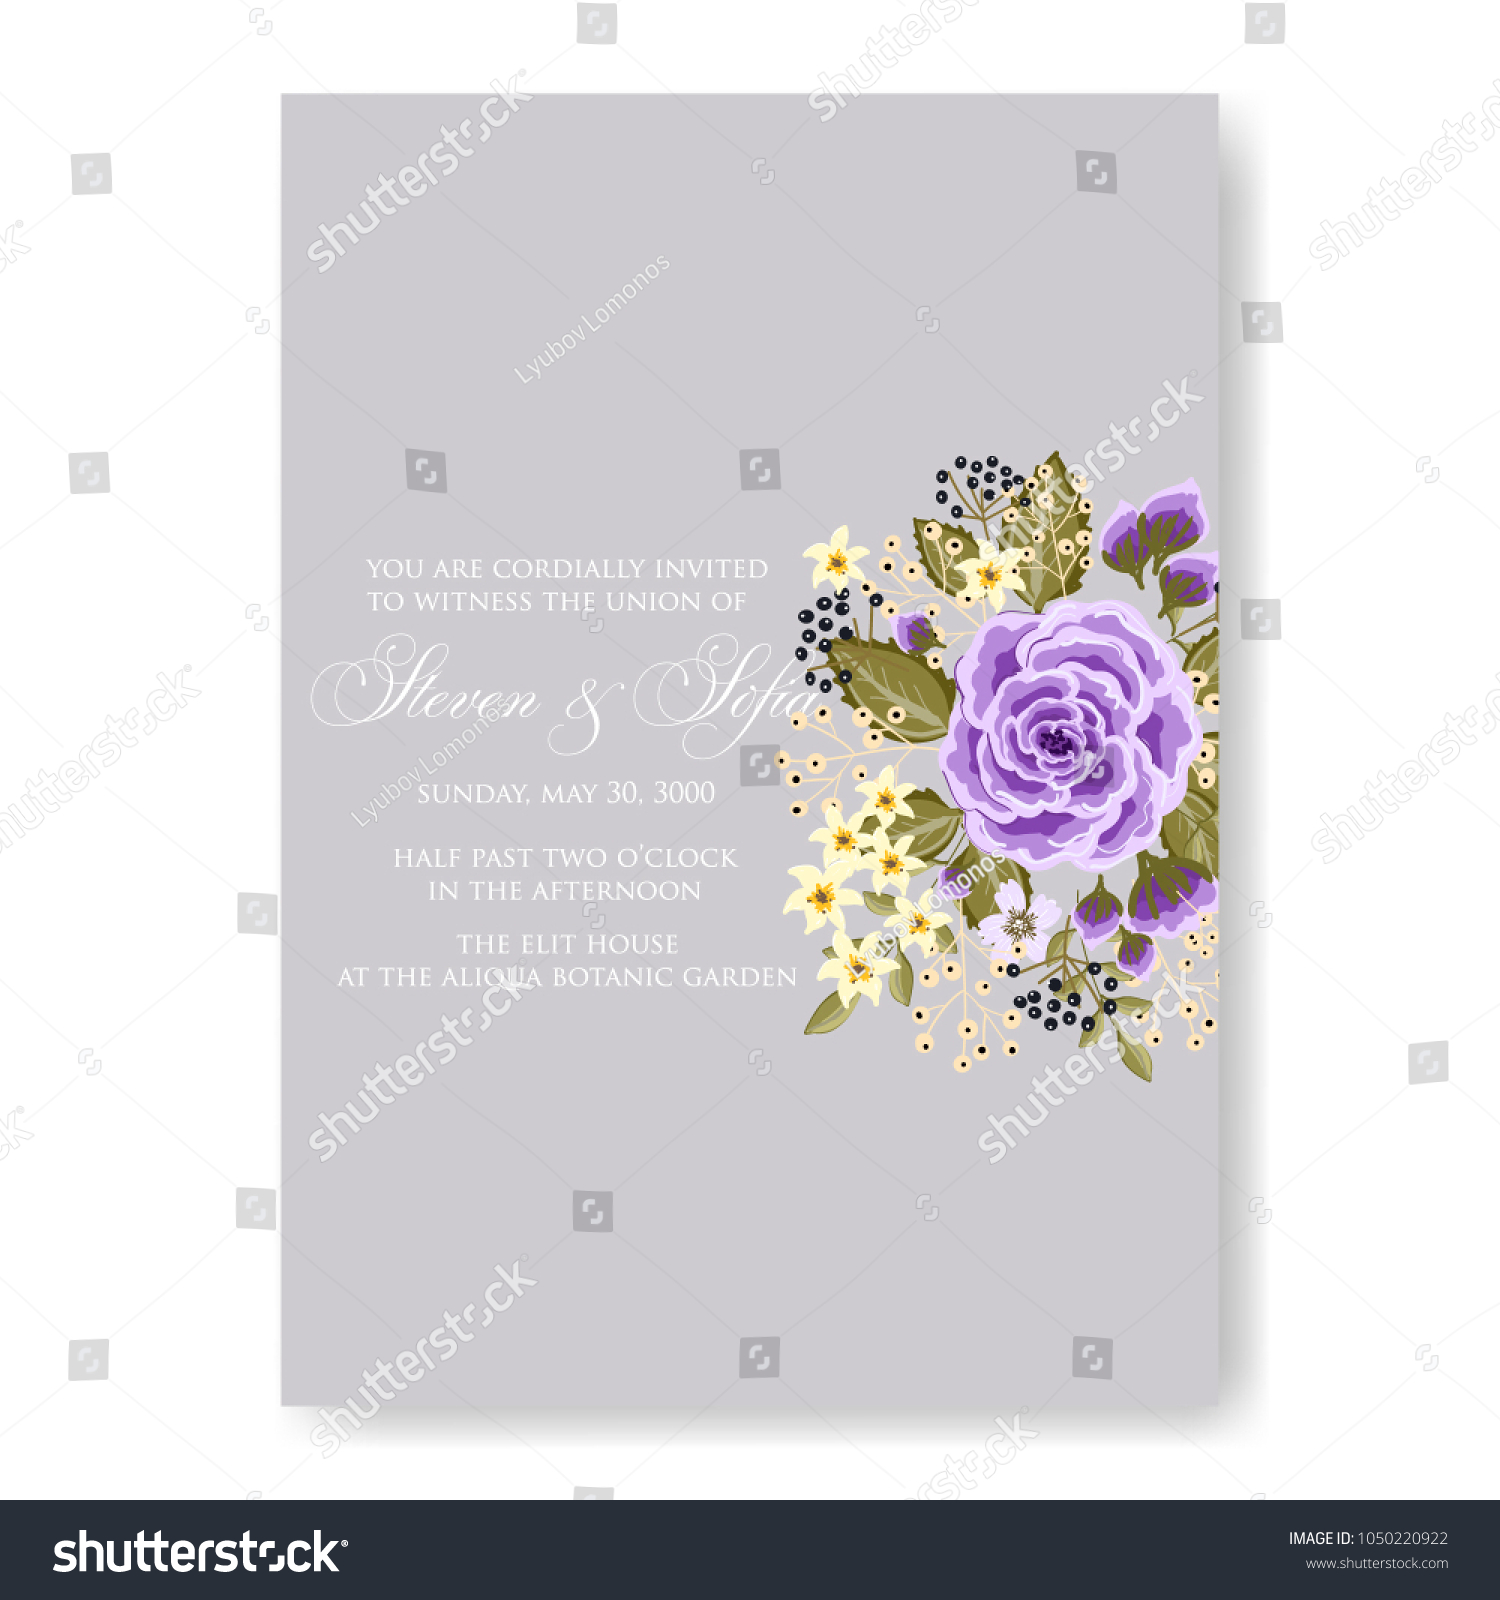 Floral Wedding Invitation Vector Template Marriage Stock Vector HD ...